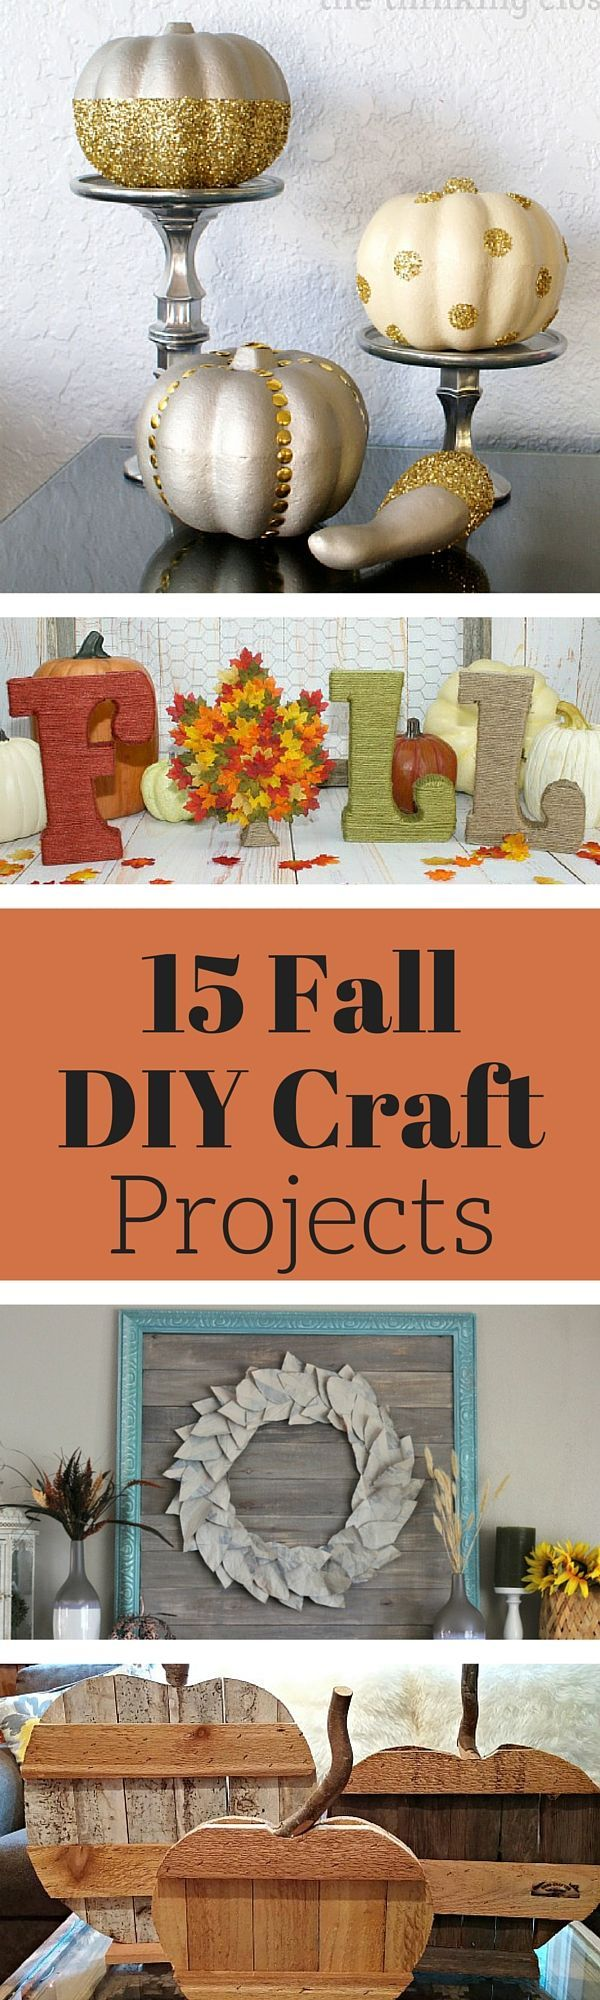 Fall crafts and diy projects pumpkins fall home decor for Fall diy crafts pinterest